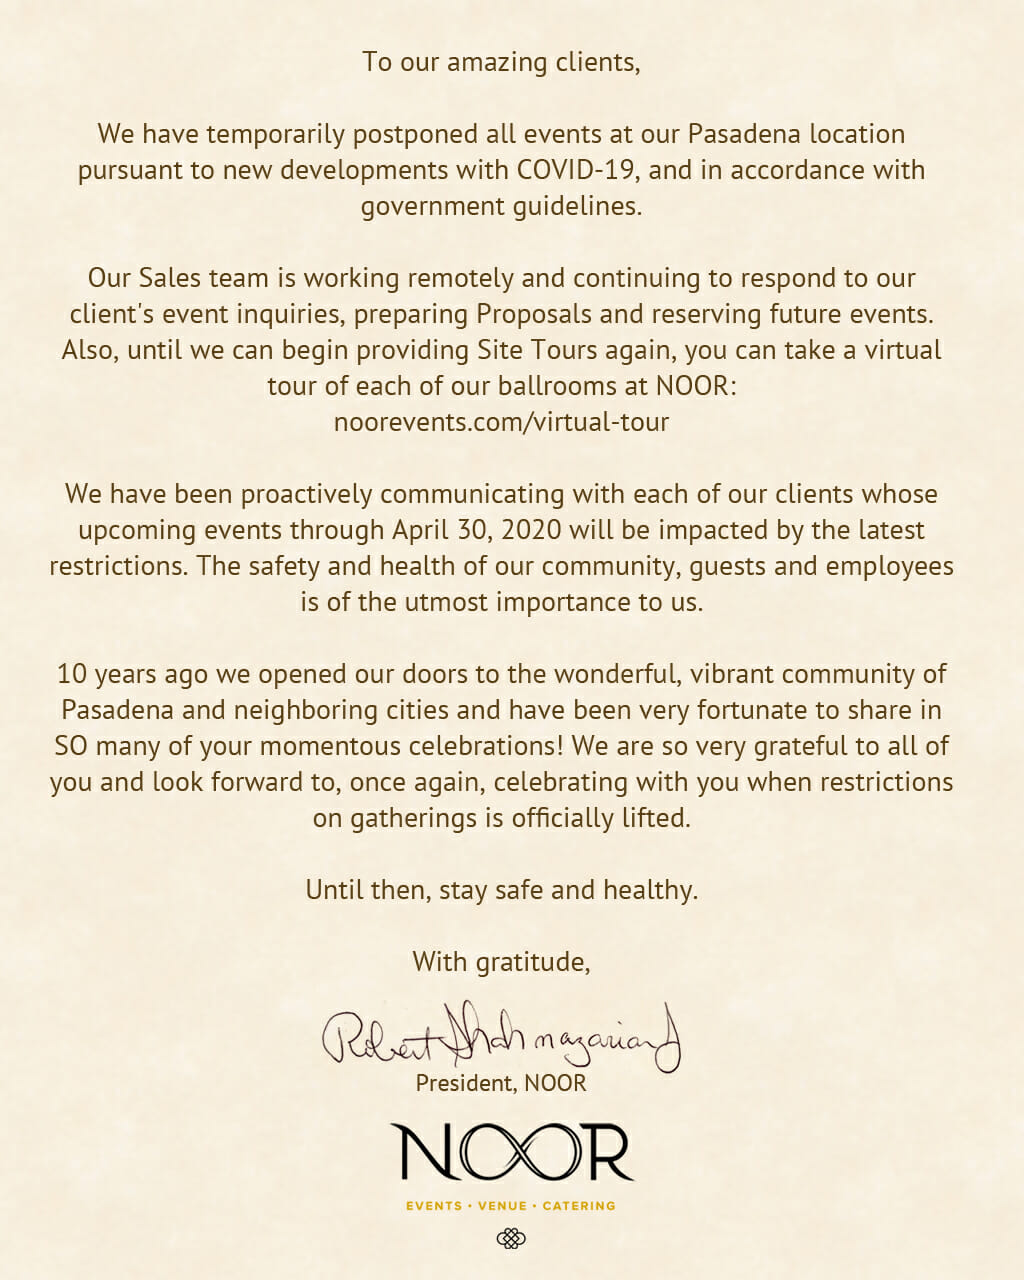 COVID-19 statement from NOOR